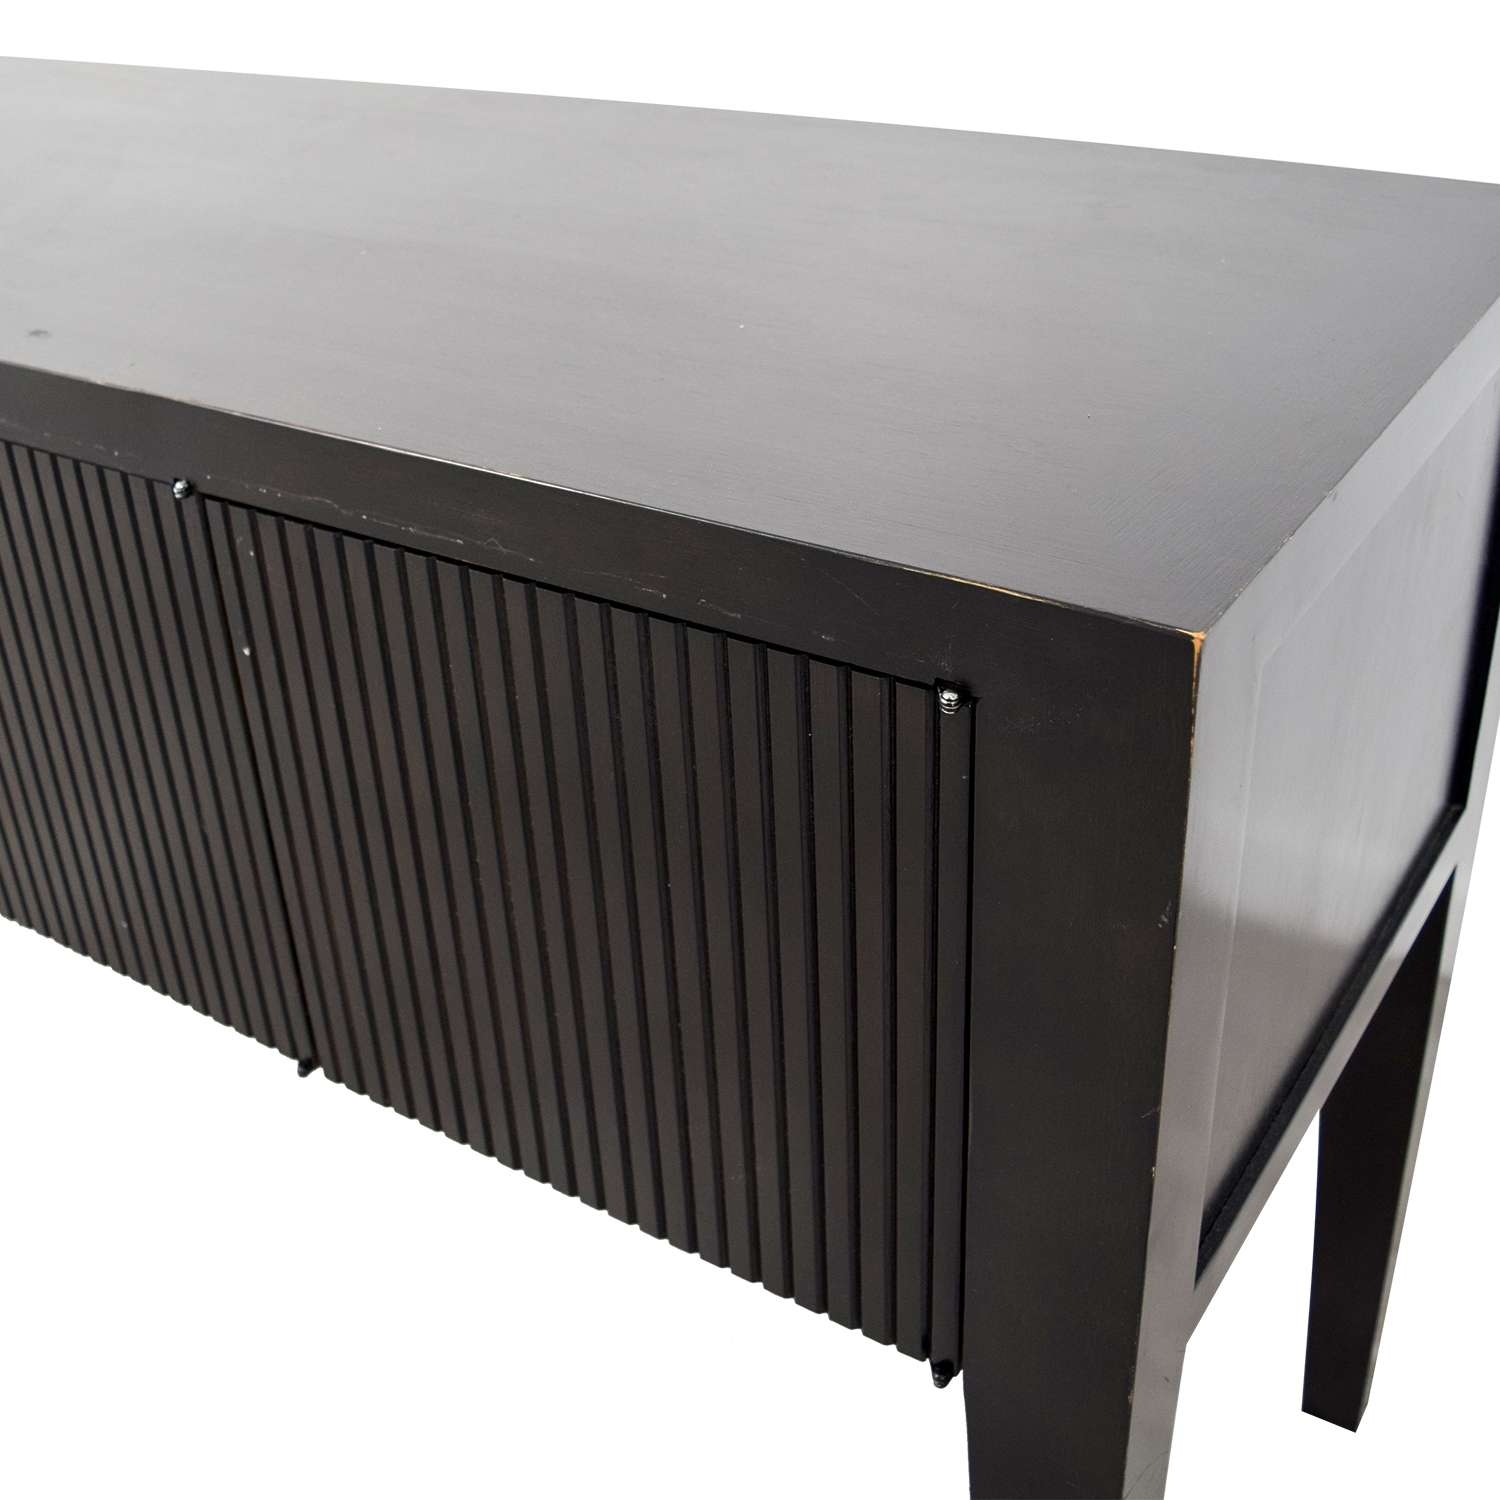 76% Off – Crate And Barrel Crate And Barrel Wood Sideboard / Storage In Crate And Barrel Sideboards (View 20 of 20)